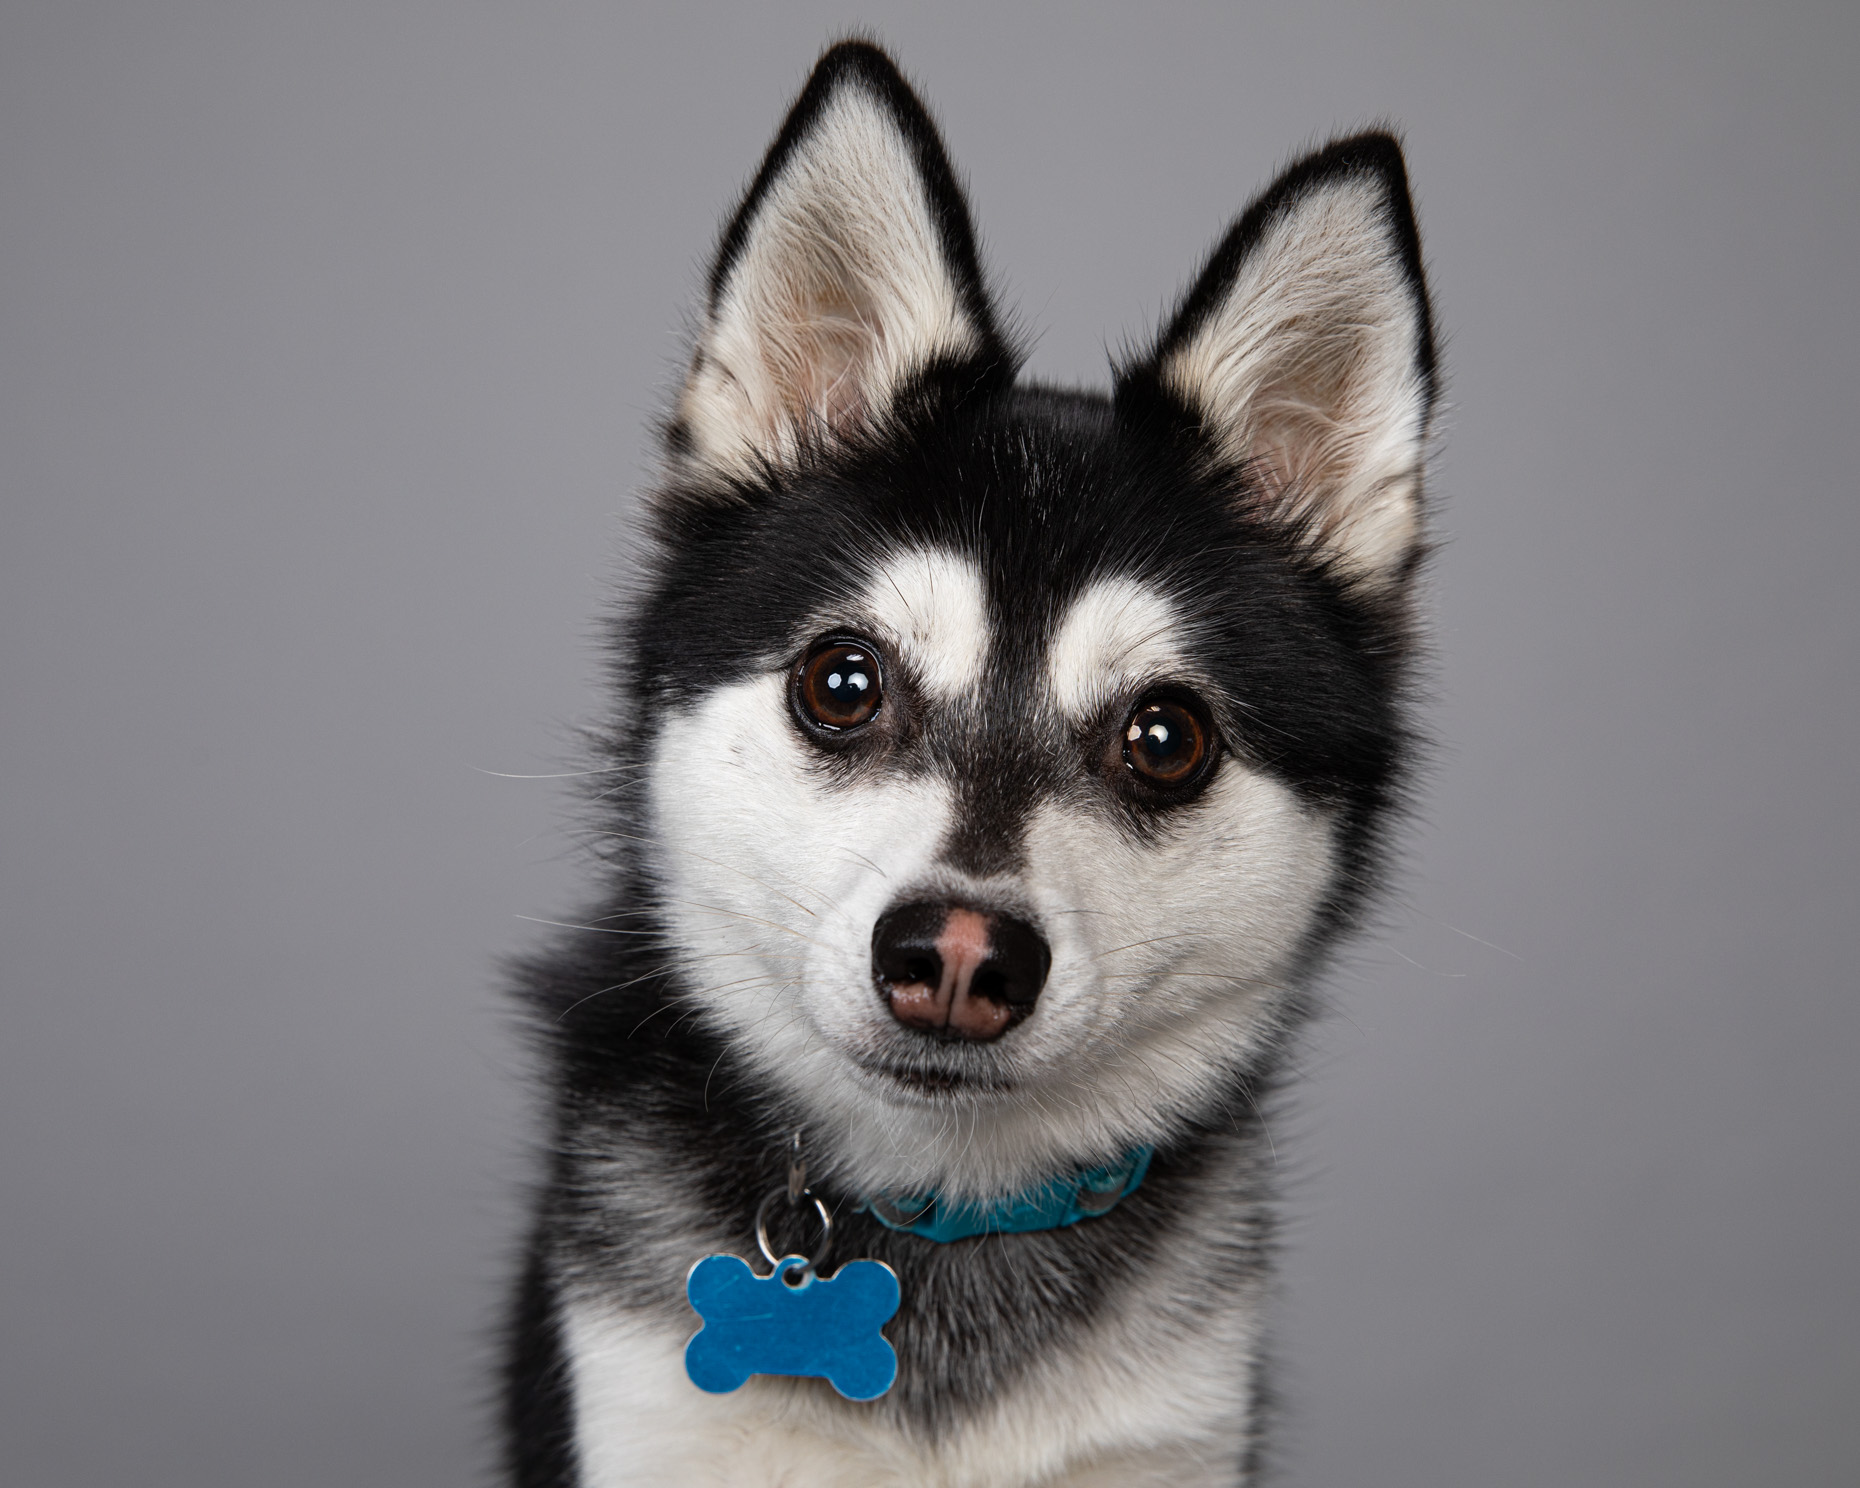 Pet Studio Photography | Miniature Husky by Mark Rogers